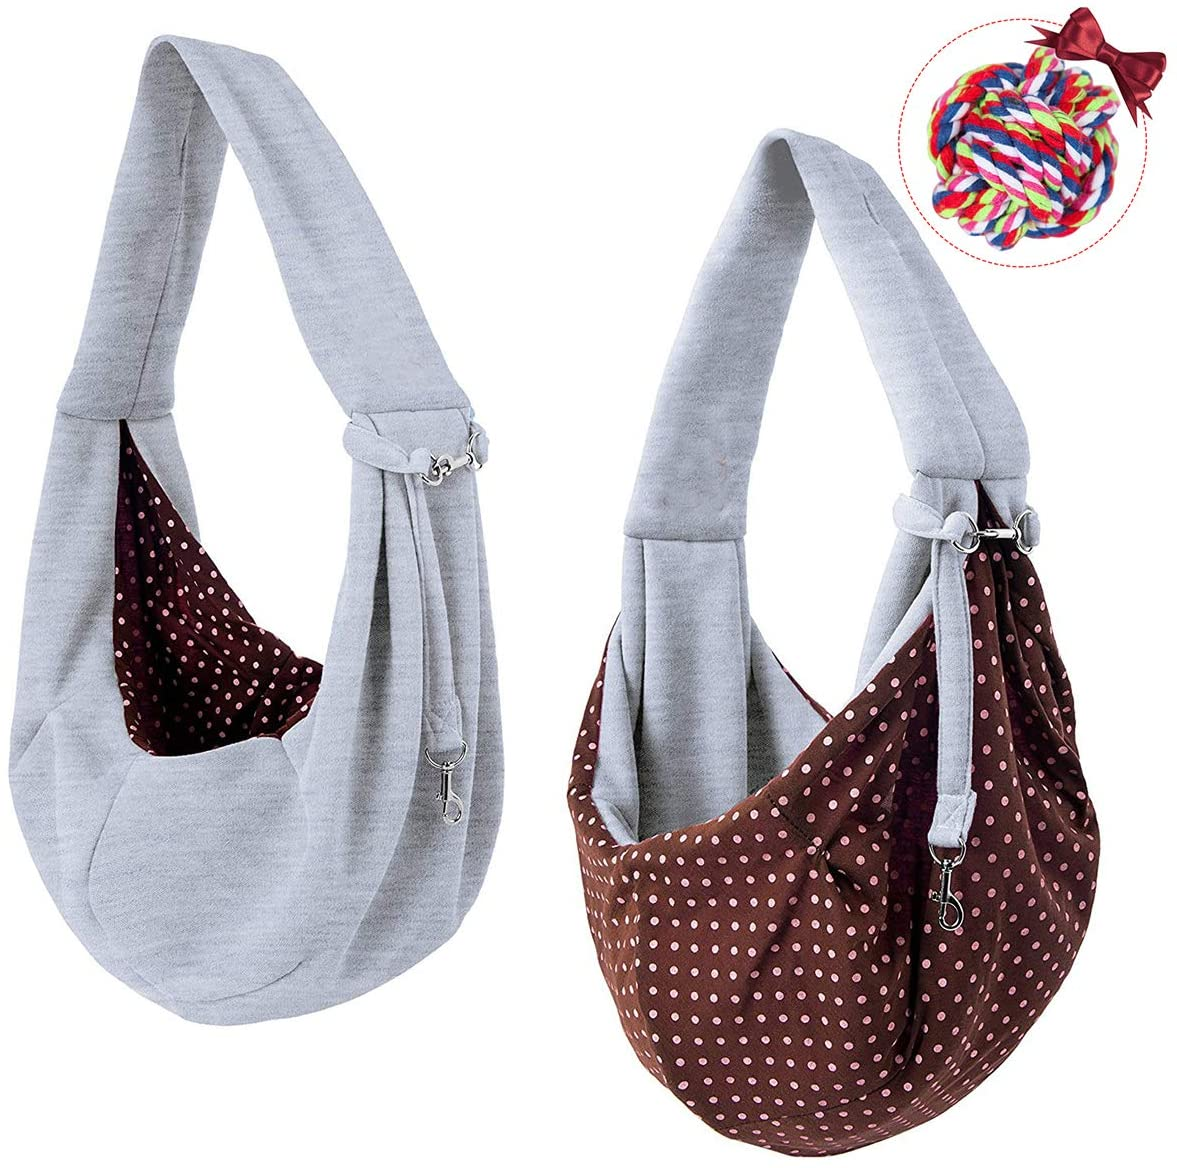 Tumenque Dog Cat Sling Carrier-Hands Free Reversible Pet Papoose Bag Soft Breathable Cotton Pouch and Tote Outdoor Travel Bag Carrying Puppy/Small Dogs/Cats with a Colorful Dog Rope Ball